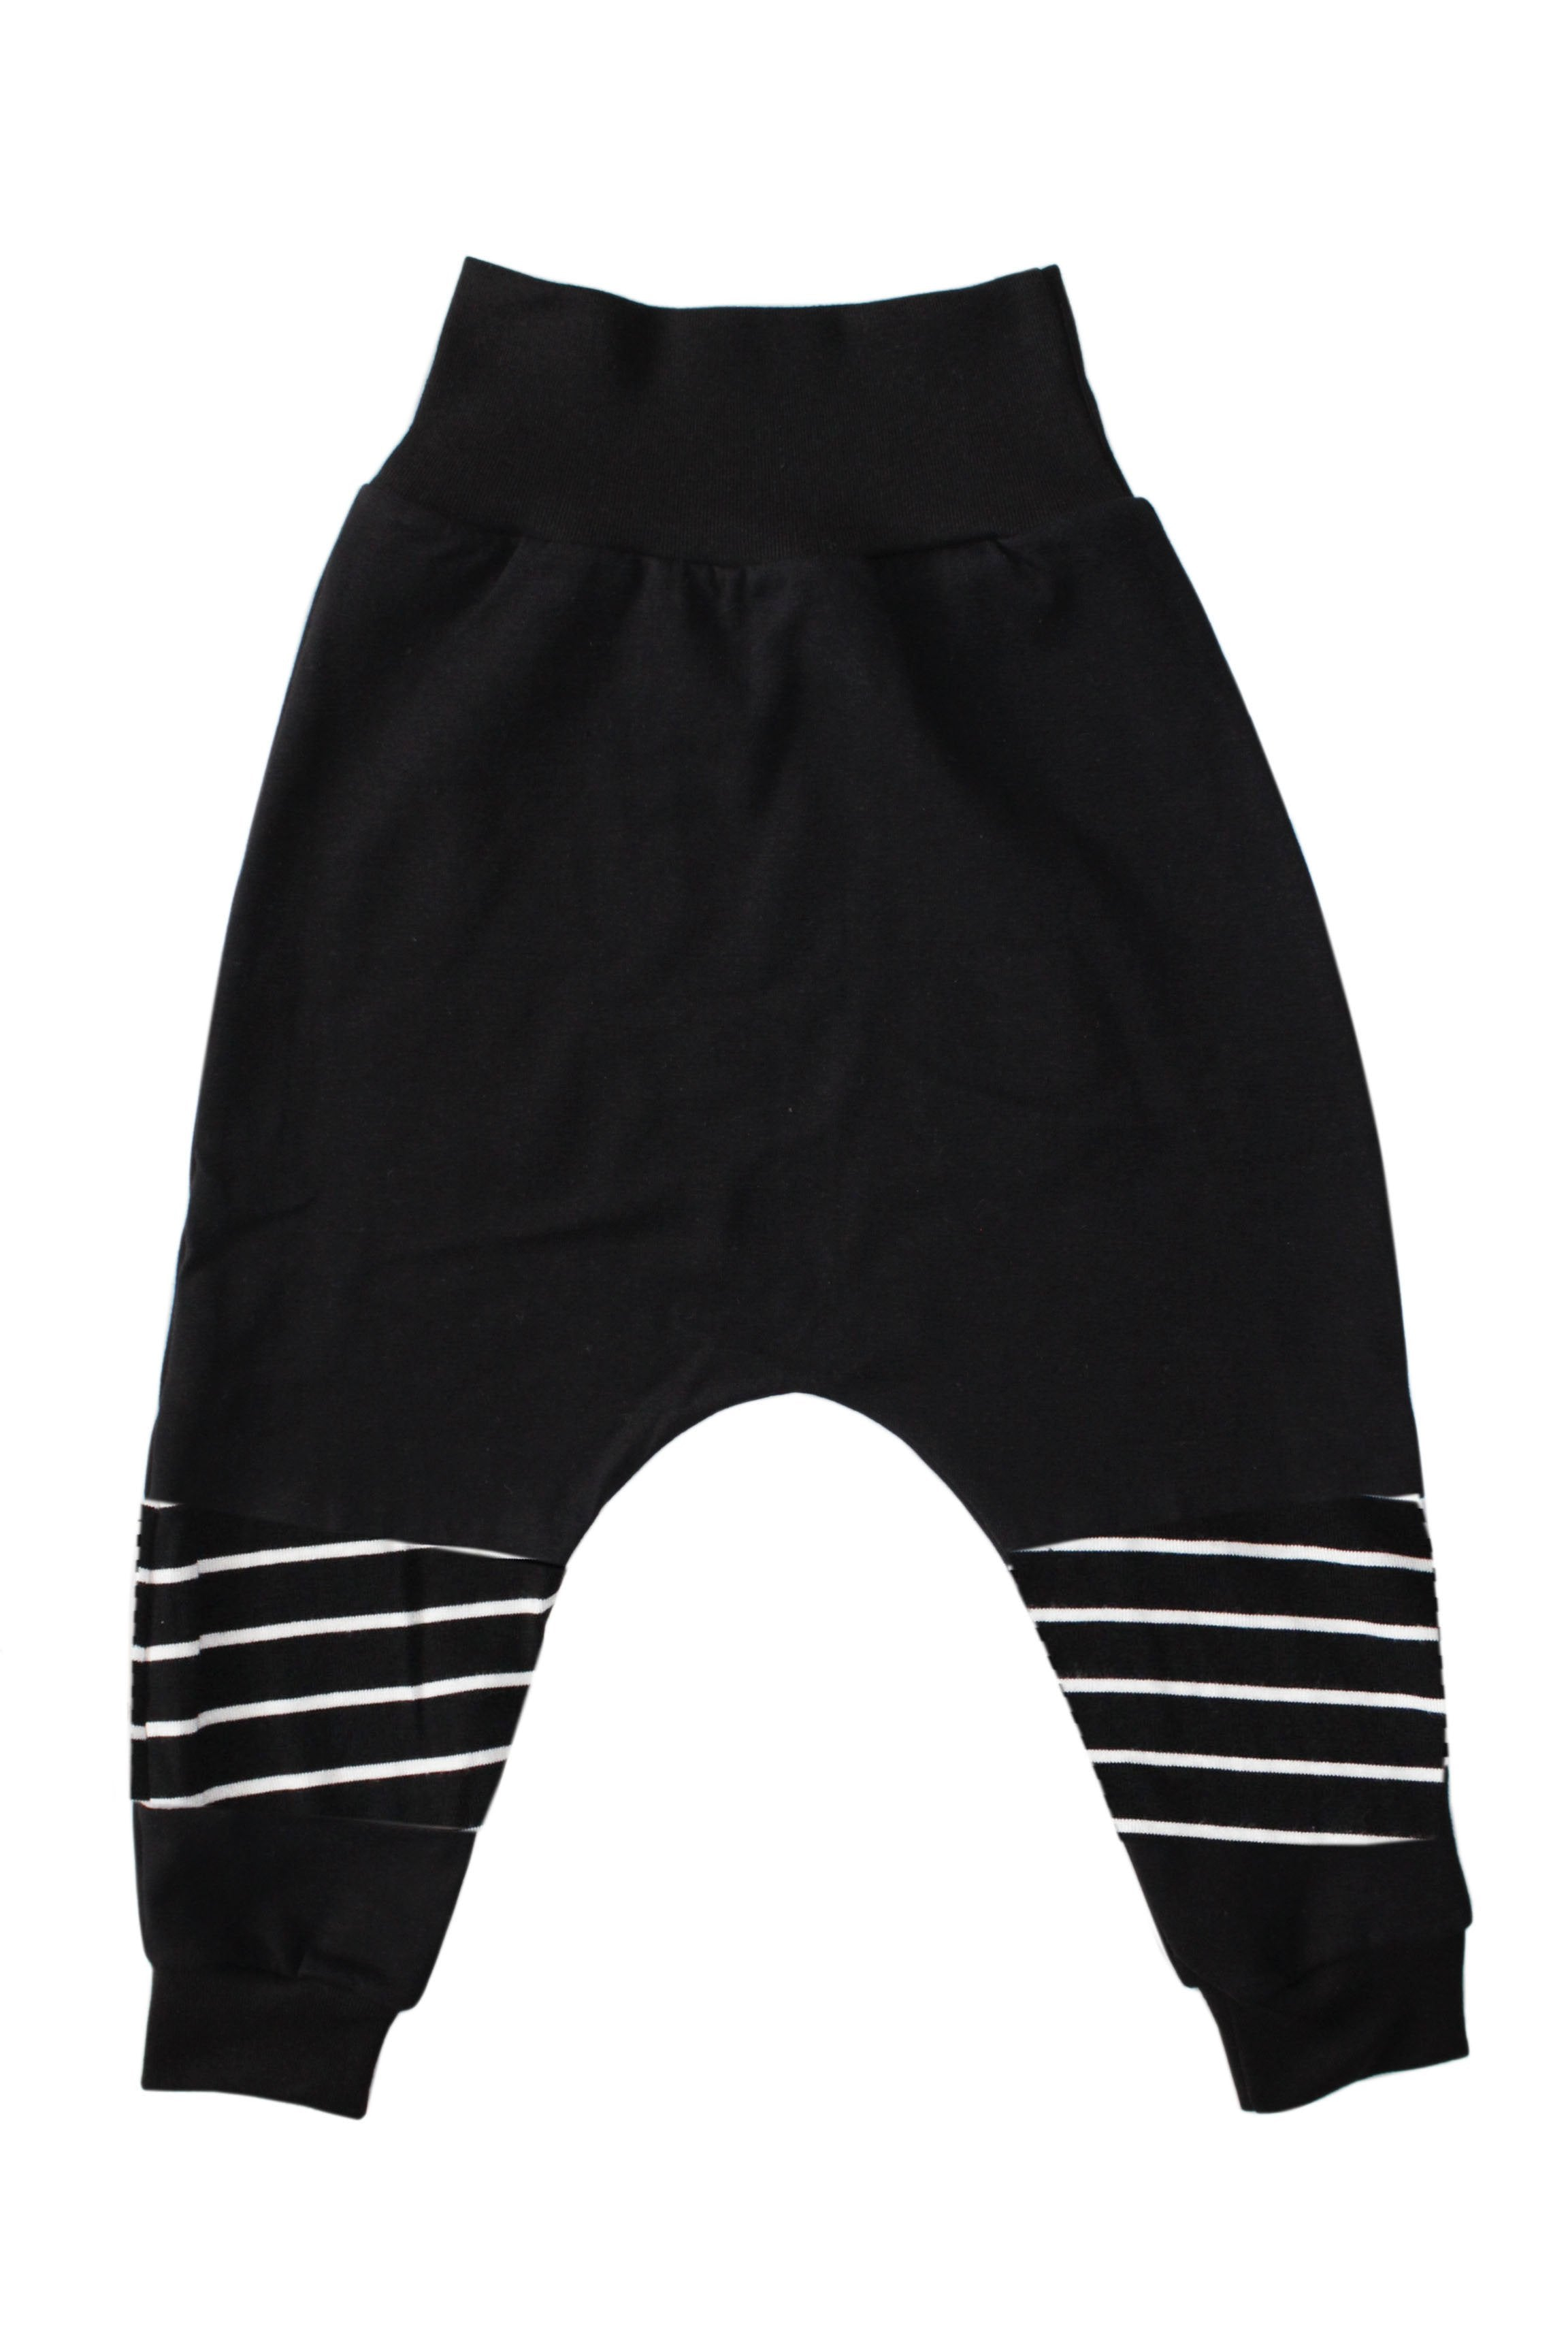 Panel Harem Pants - B/W Striped